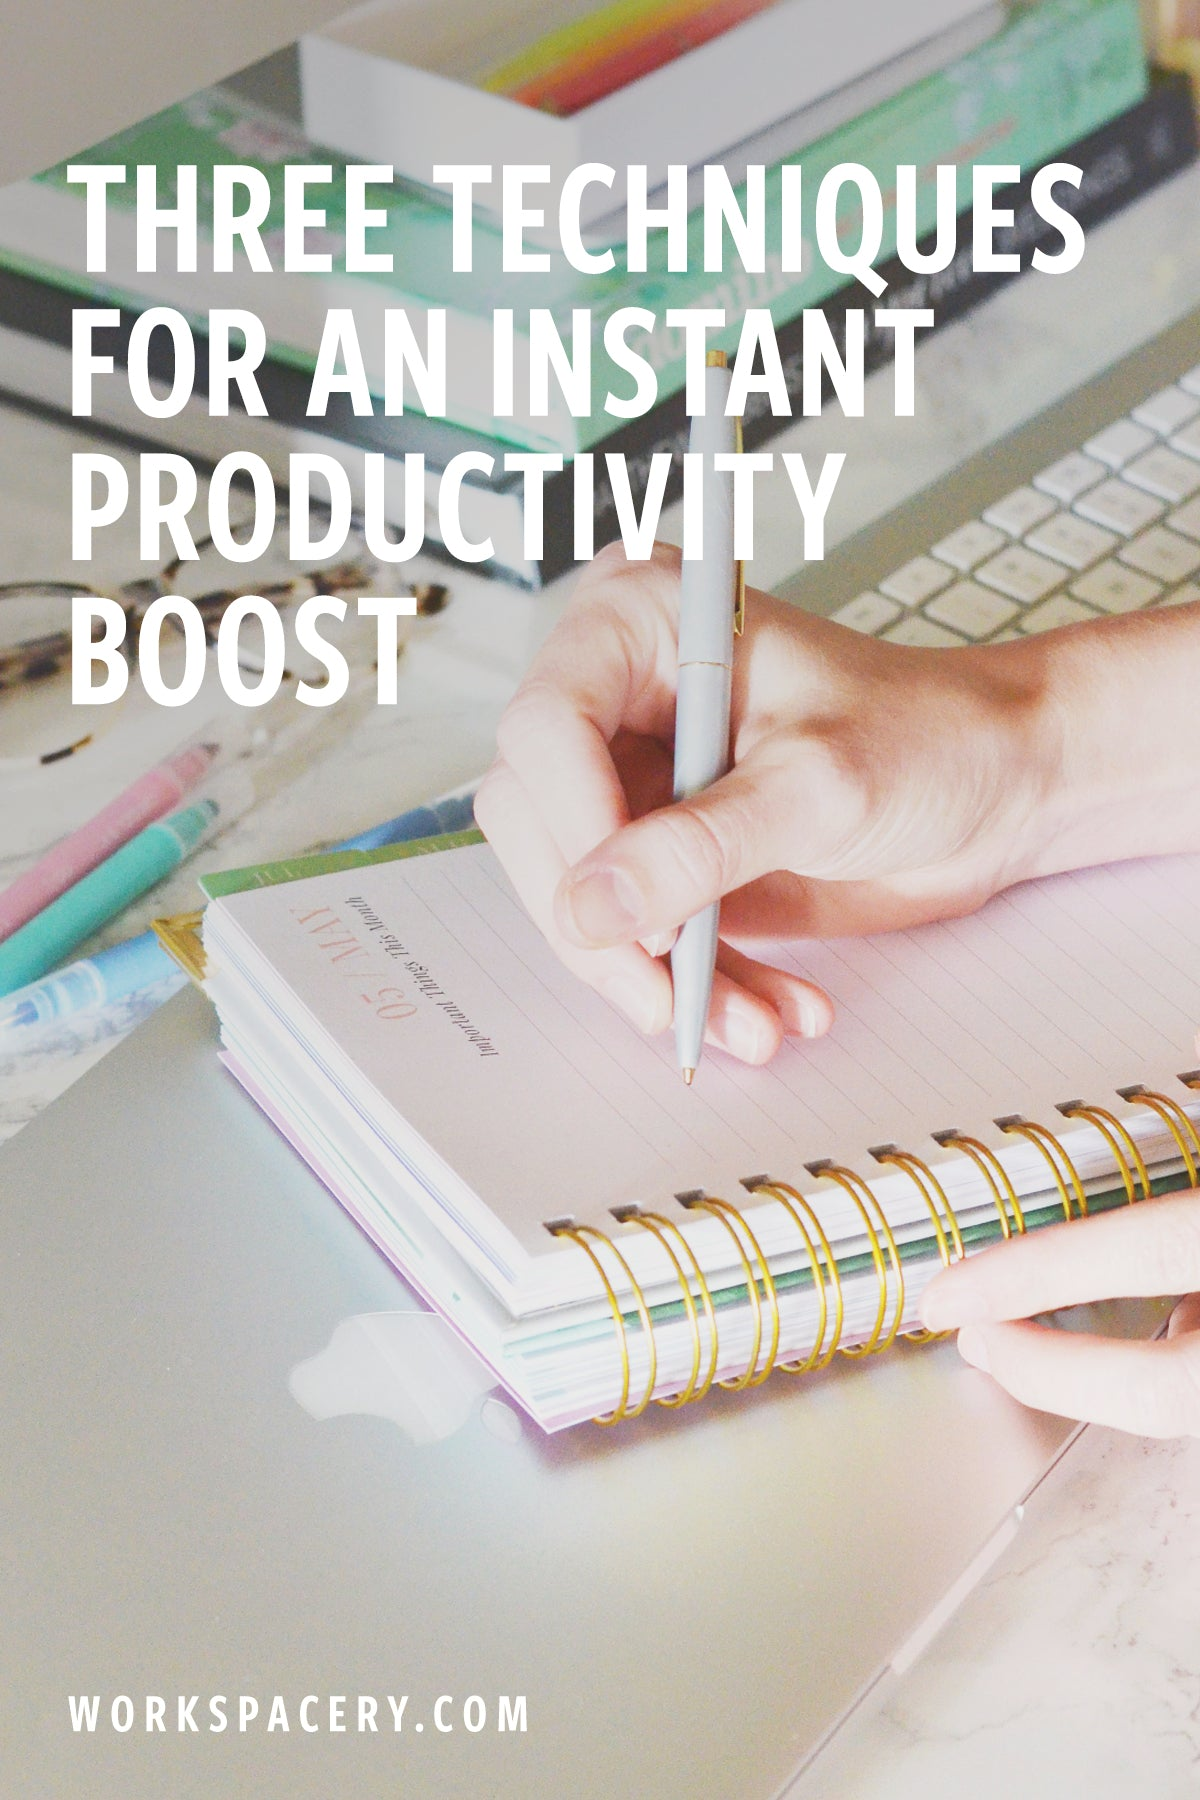 Three Techniques for an Instant Productivity Boost